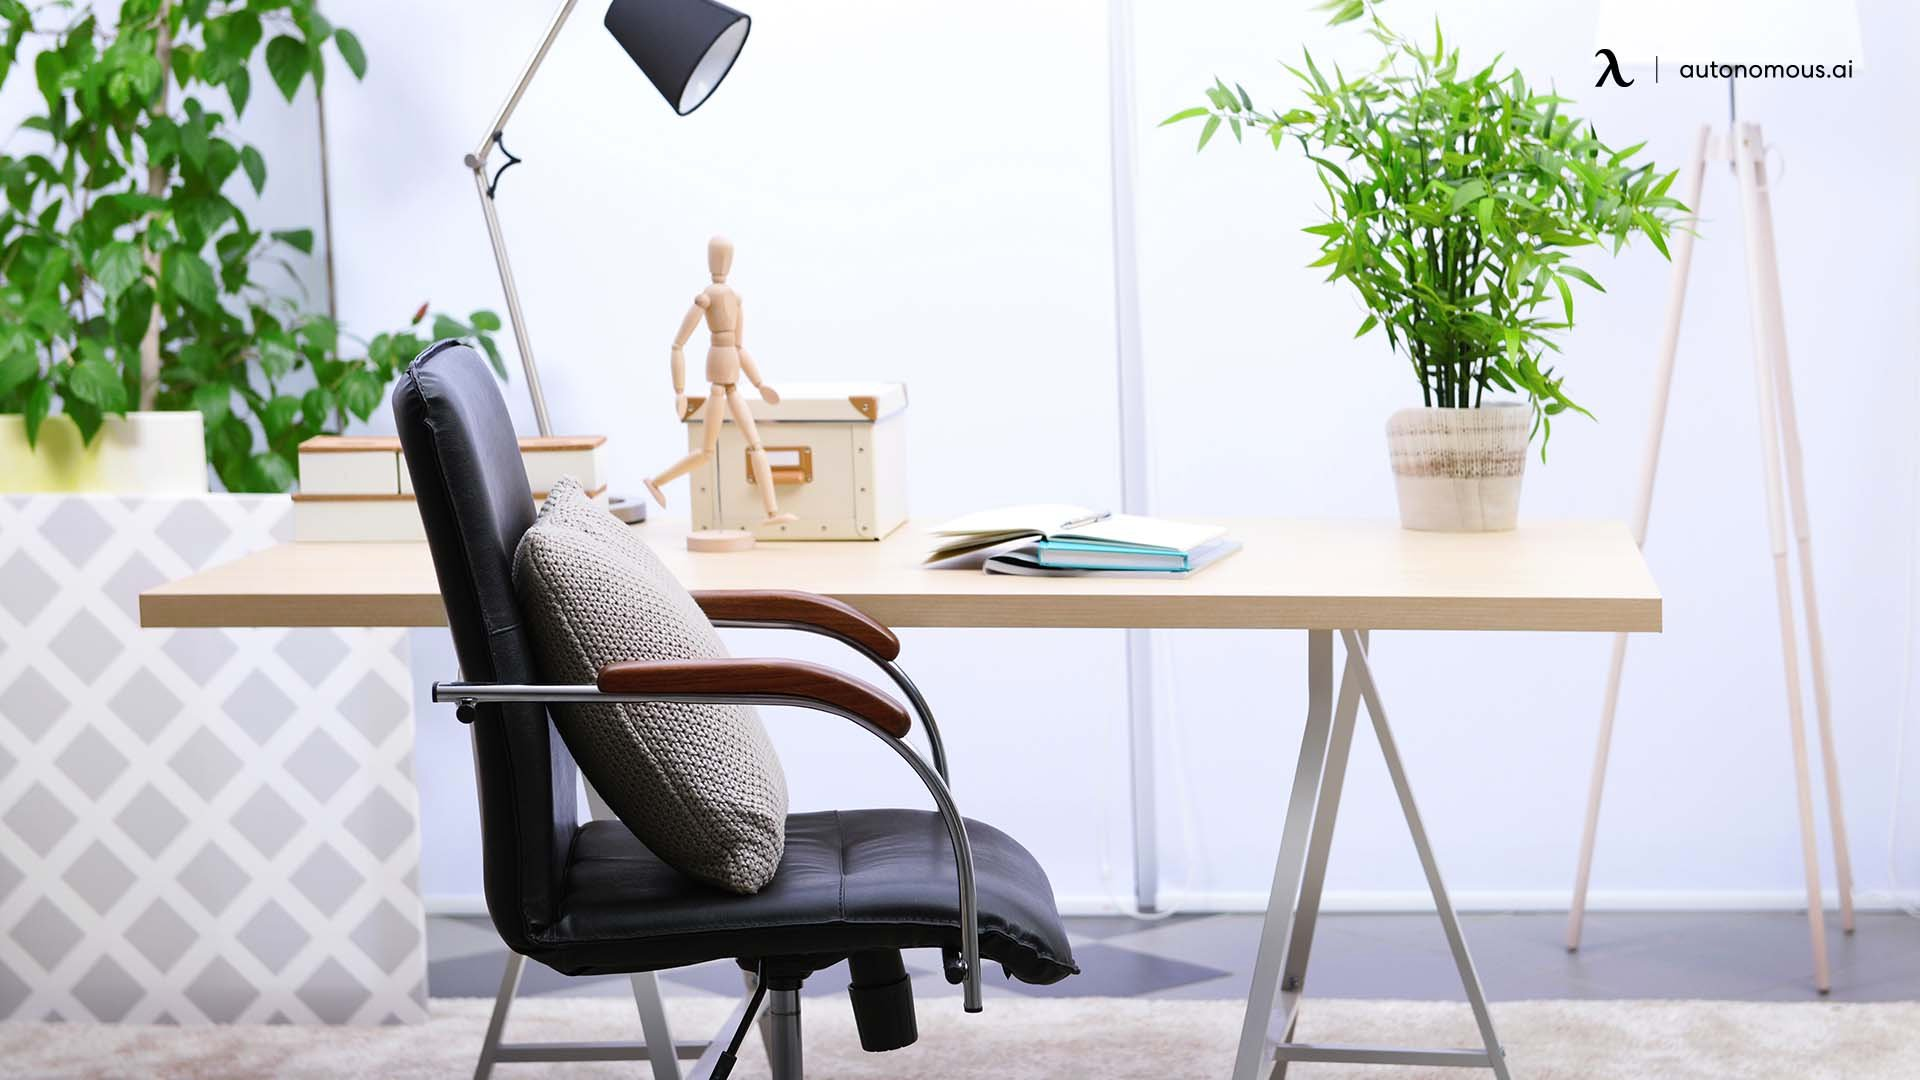 Finding the Best Ergonomic Office Chair